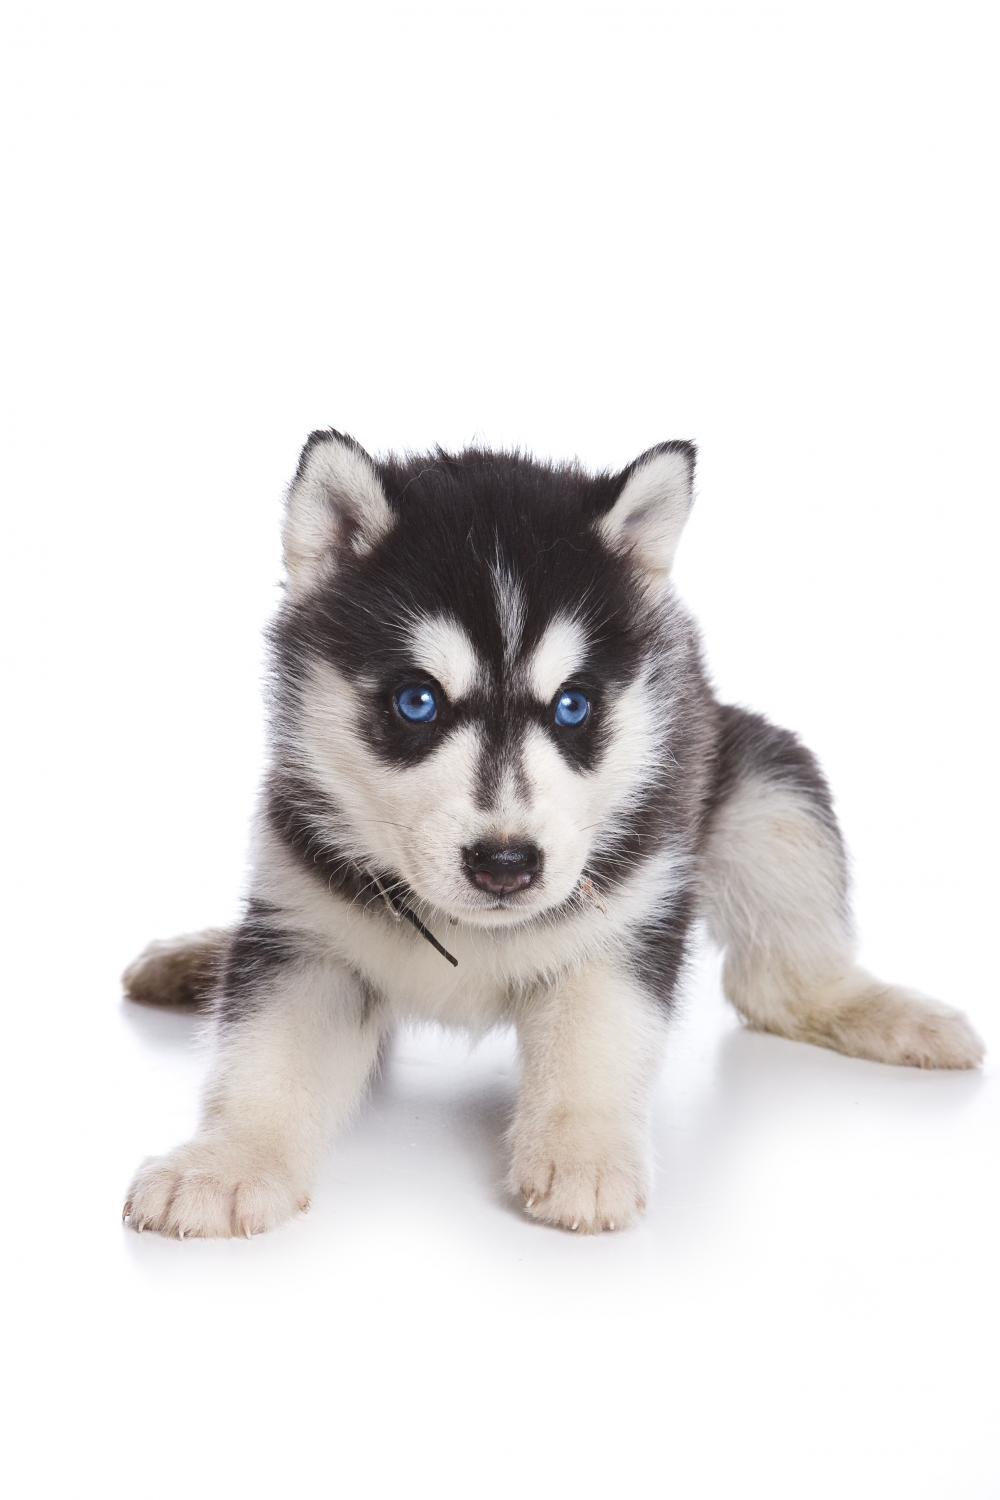 Siberian Husky puppy on white Wall Decal